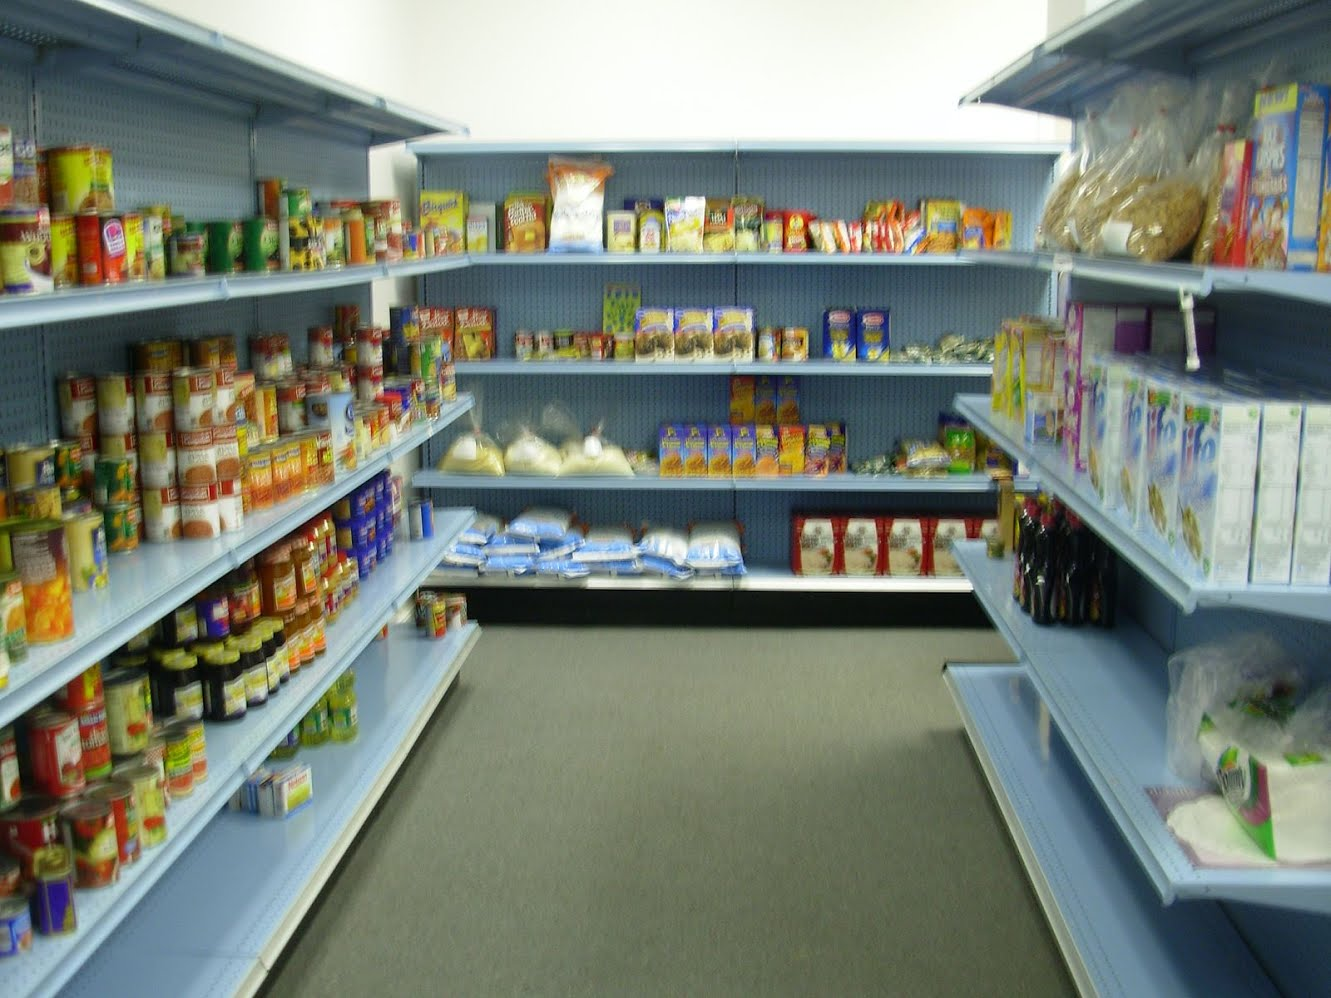 pantries the eating designs clean of kitchen drool to with pantry pantrys beautiful most perfect over kids picture